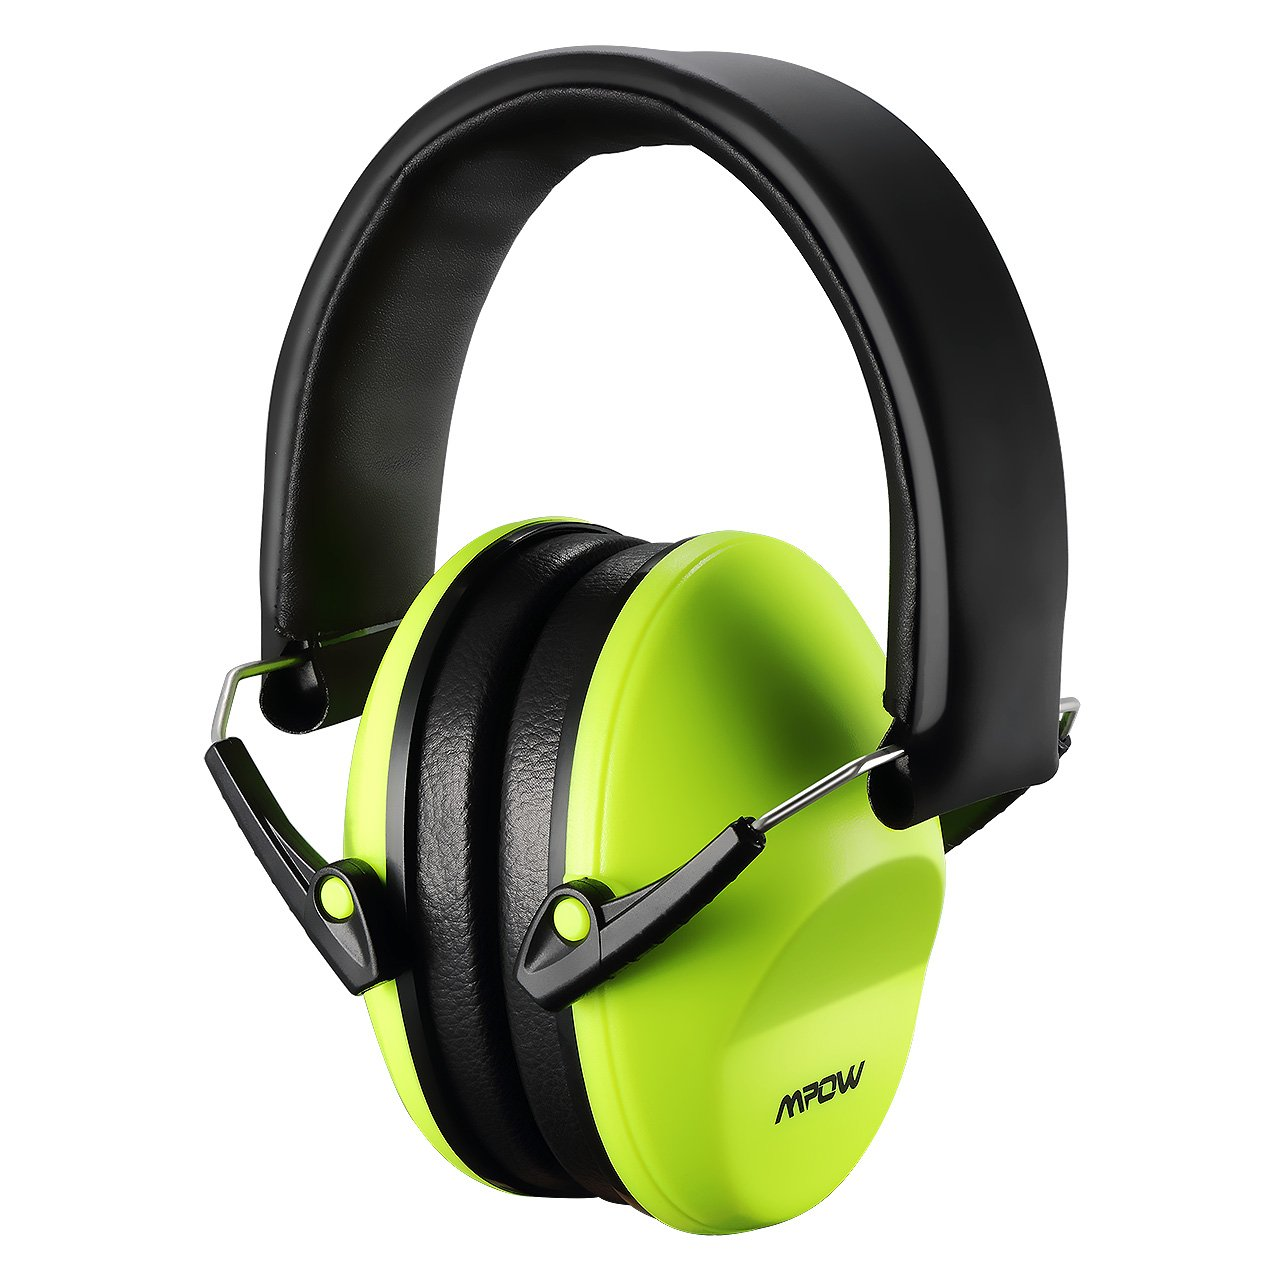 Mpow Kids Safety Ear Muffs, NRR 25dB Professional Noise Reduction Shooter Hearing Protection, Ear Defenders for Shooting Range Hunting for Children, Infants, Small Adults, Women (Green)